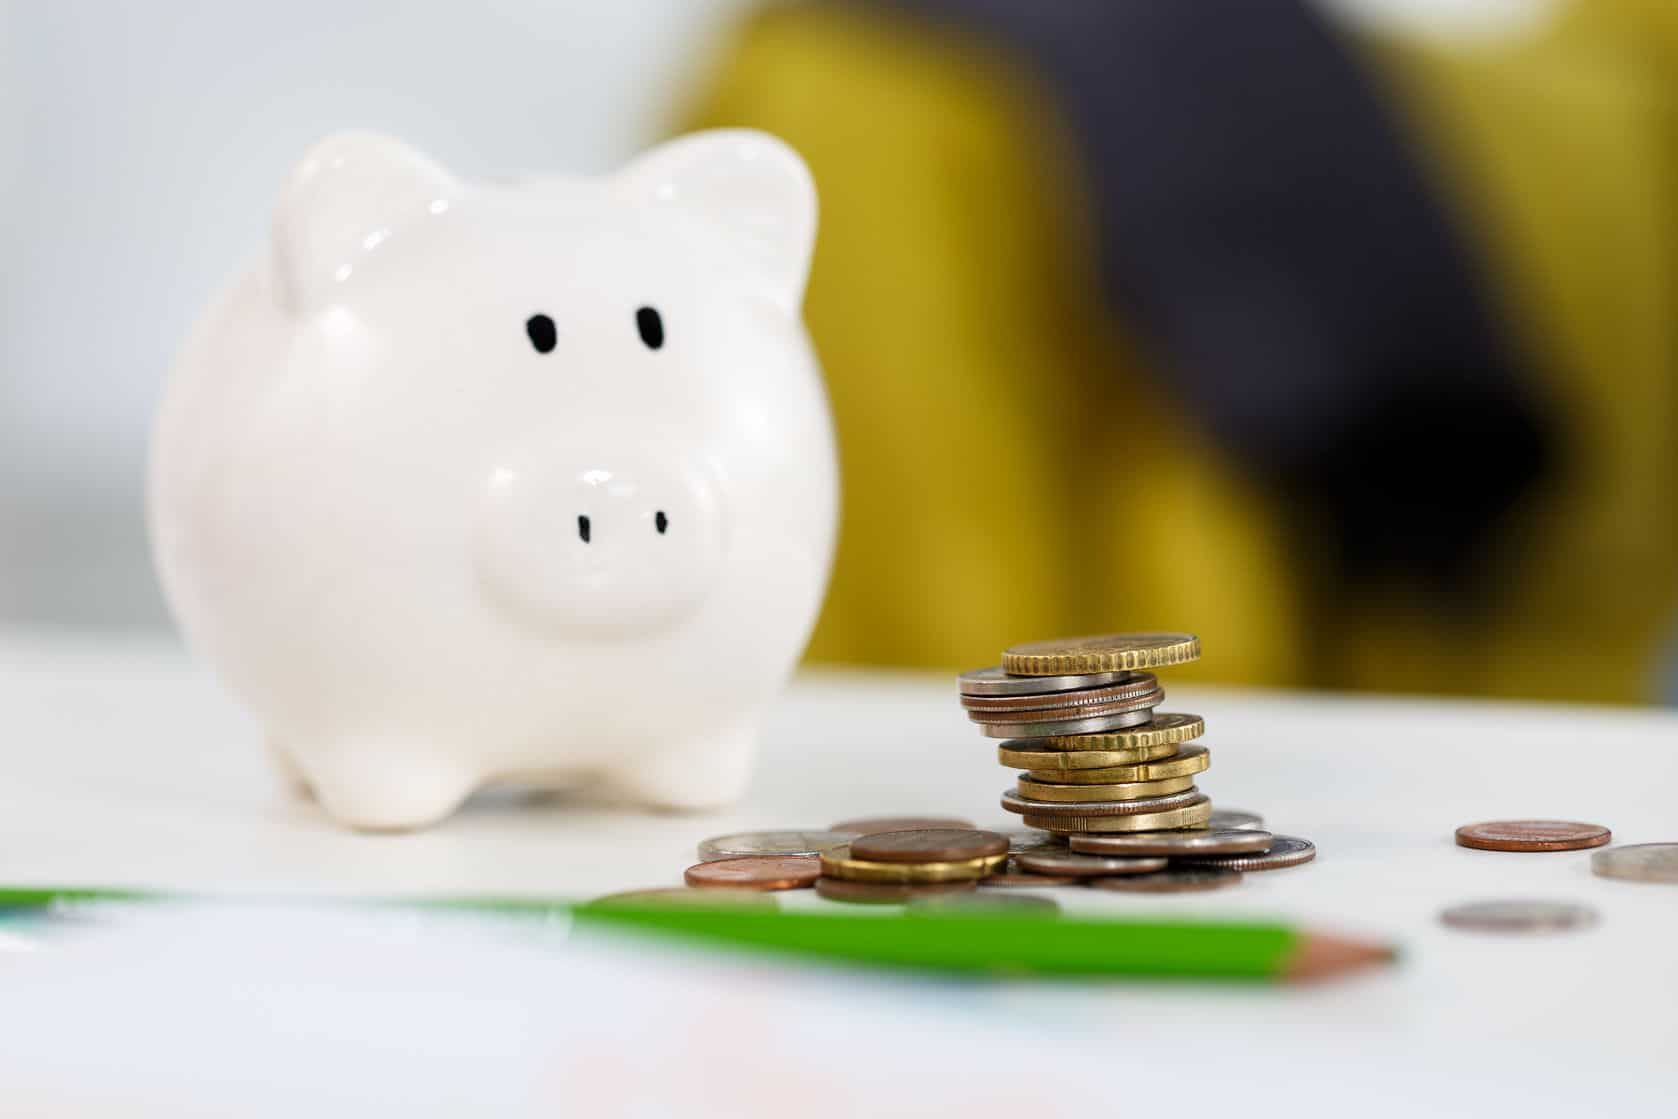 Help kids learn to put some coins in their piggy bank and start a savings habit young.